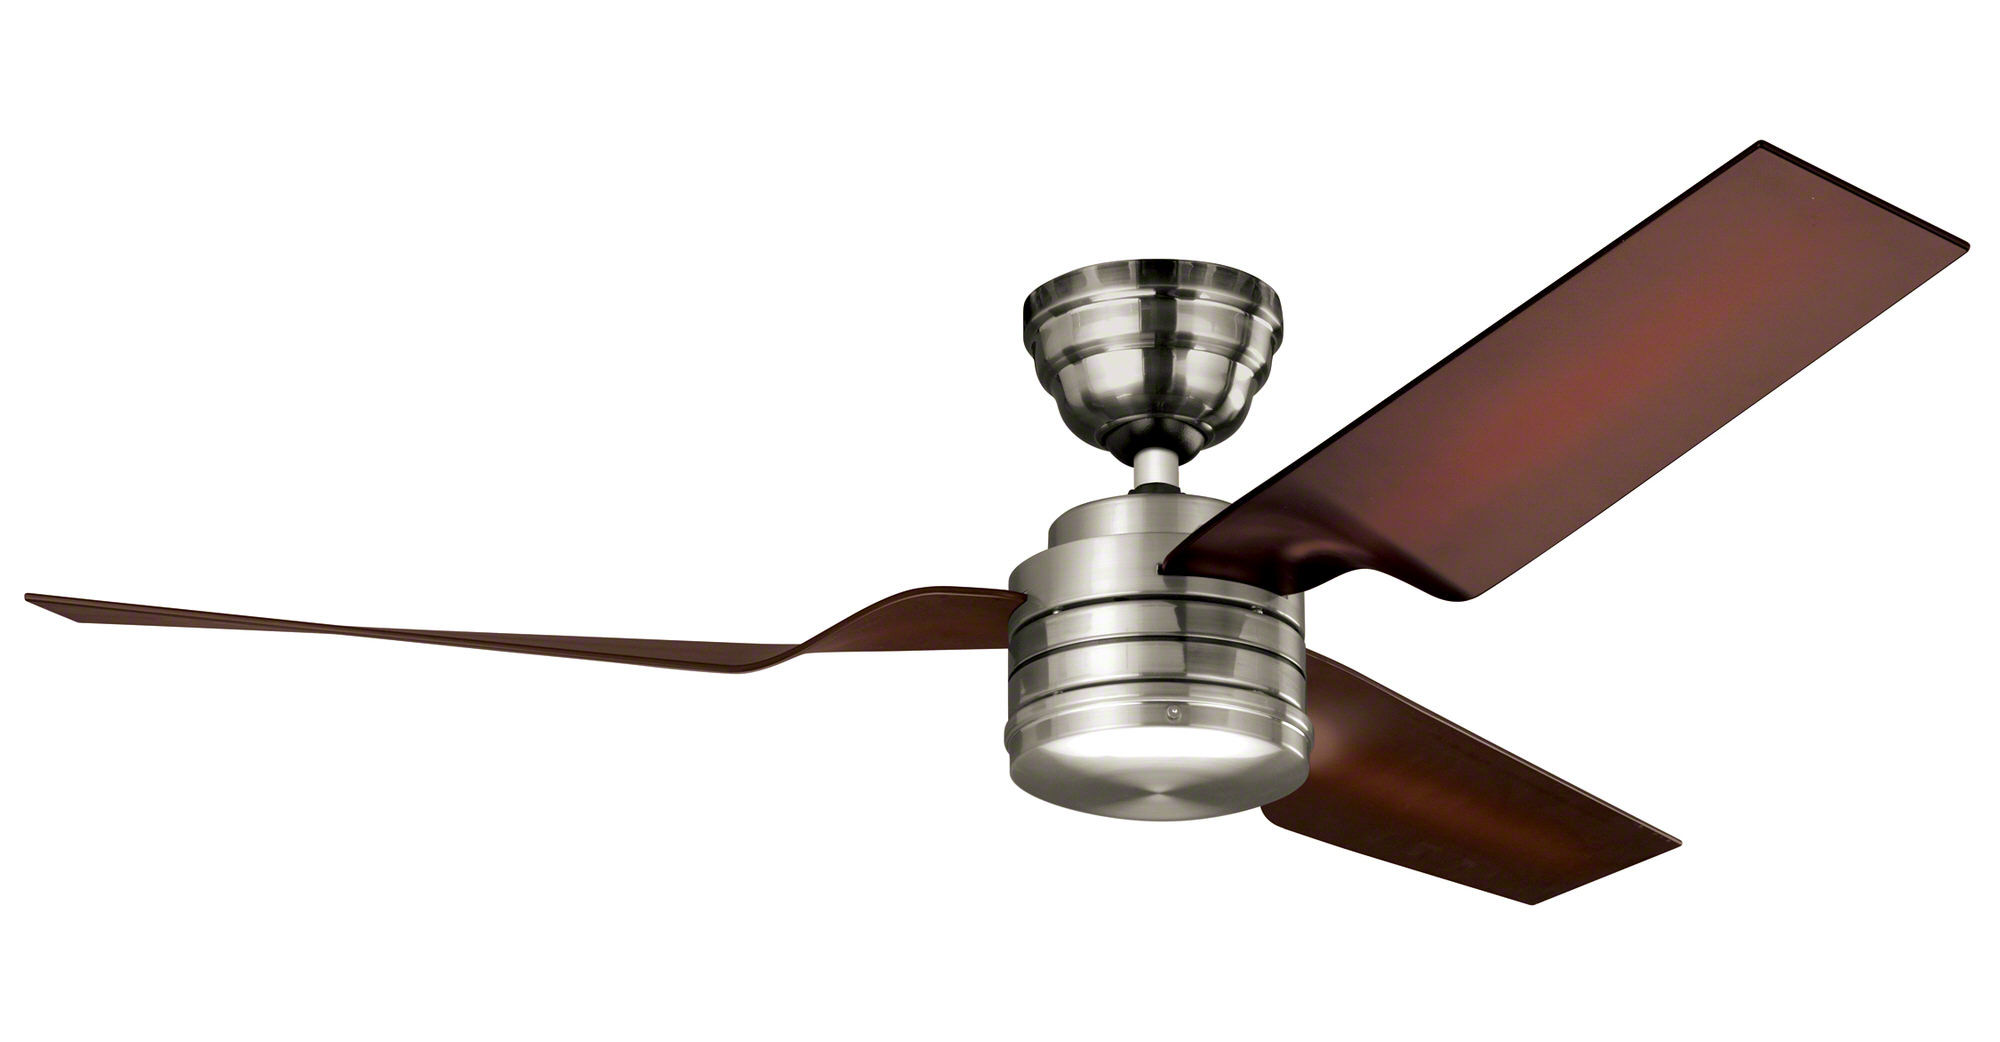 rated ceilings with lighting nickel ceiling satin industry fans fan finish brushed and remote design functionality light lights location led best ideas on bronze finished sale